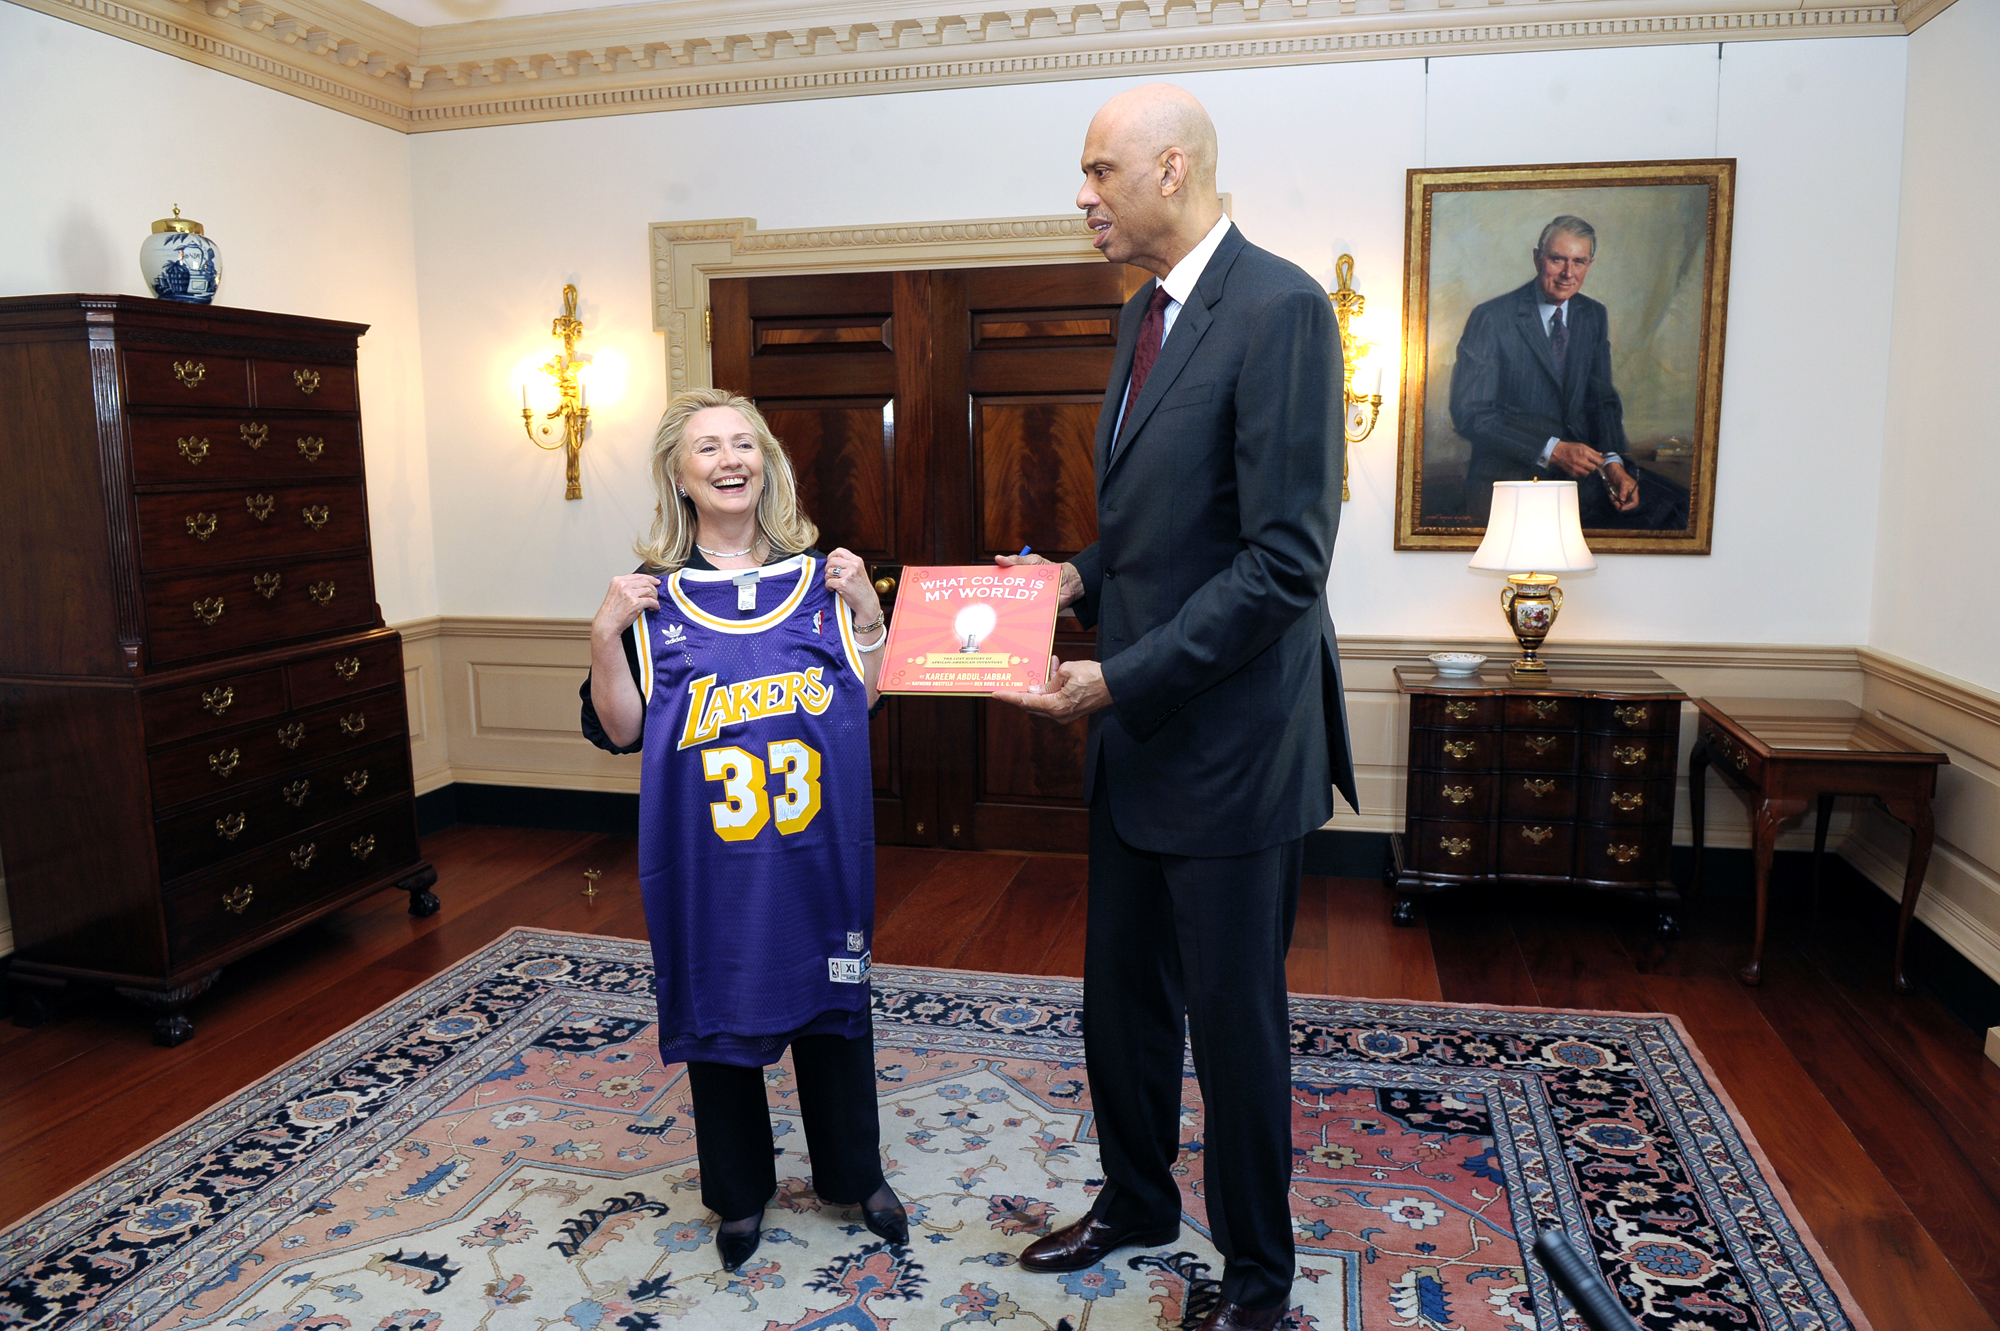 """Click photo to download. Caption:U.S. Secretary of State Hillary Rodham Clinton meets with Hall-of-Famer Kareem Abdul-Jabbar, the NBA's All-Time Leading Scorer and a New York Times' best-selling author, to discuss his new role as a global Cultural Ambassador, at the U.S. Department of State in Washington, D.C., on January 18, 2012. Abdul-Jabbar is holding a copy of the book that earned him a 2013 NAACP Image Award, """"What Color is My World?"""" Credit: U.S. State Department."""